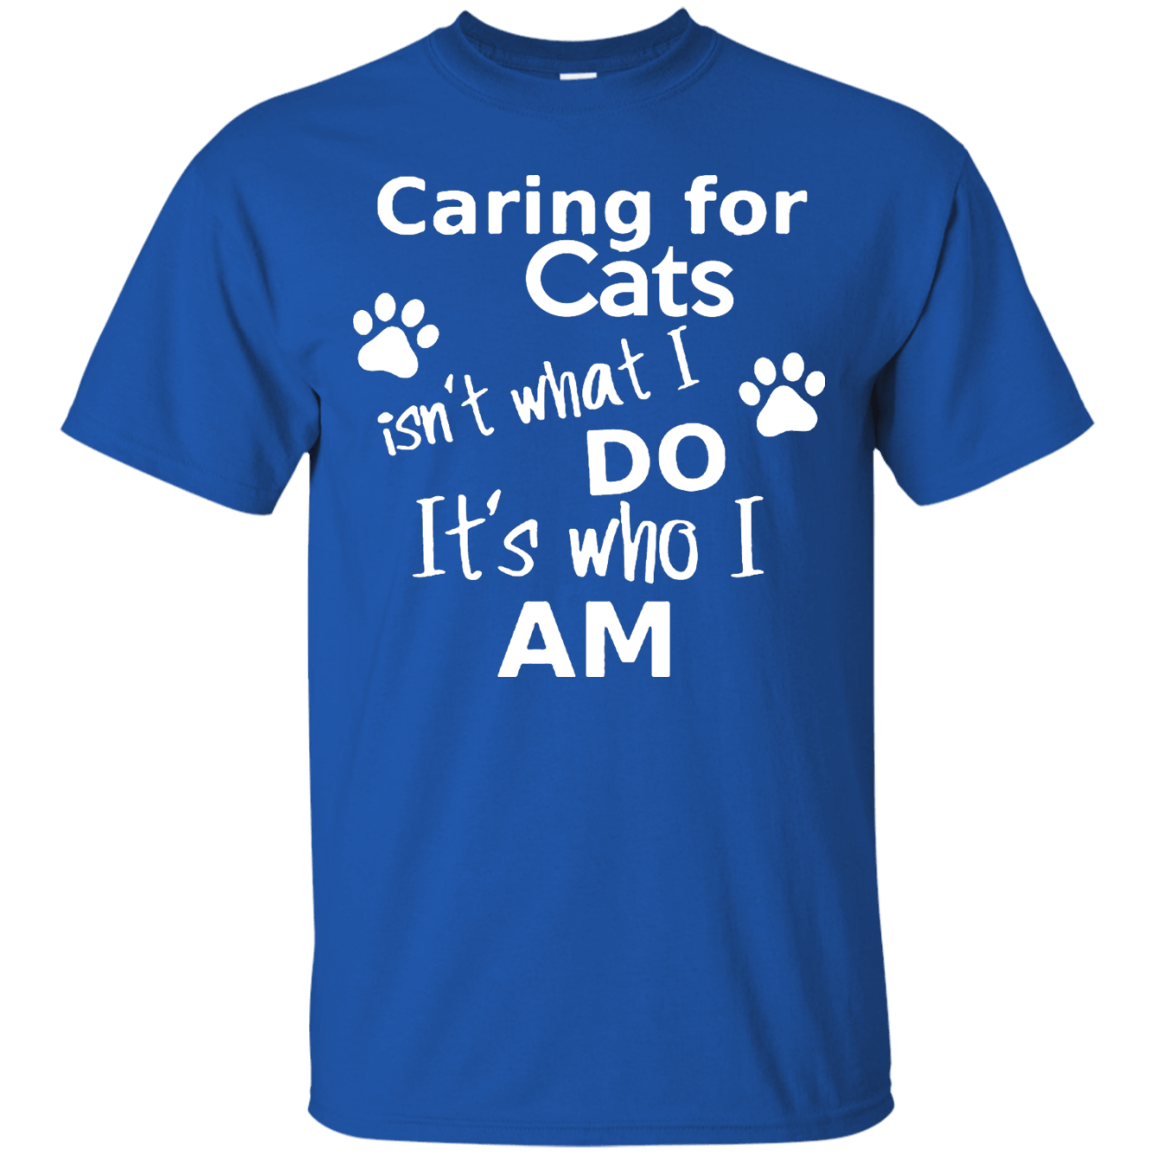 Caring for Cats - ONLINEPRESALES